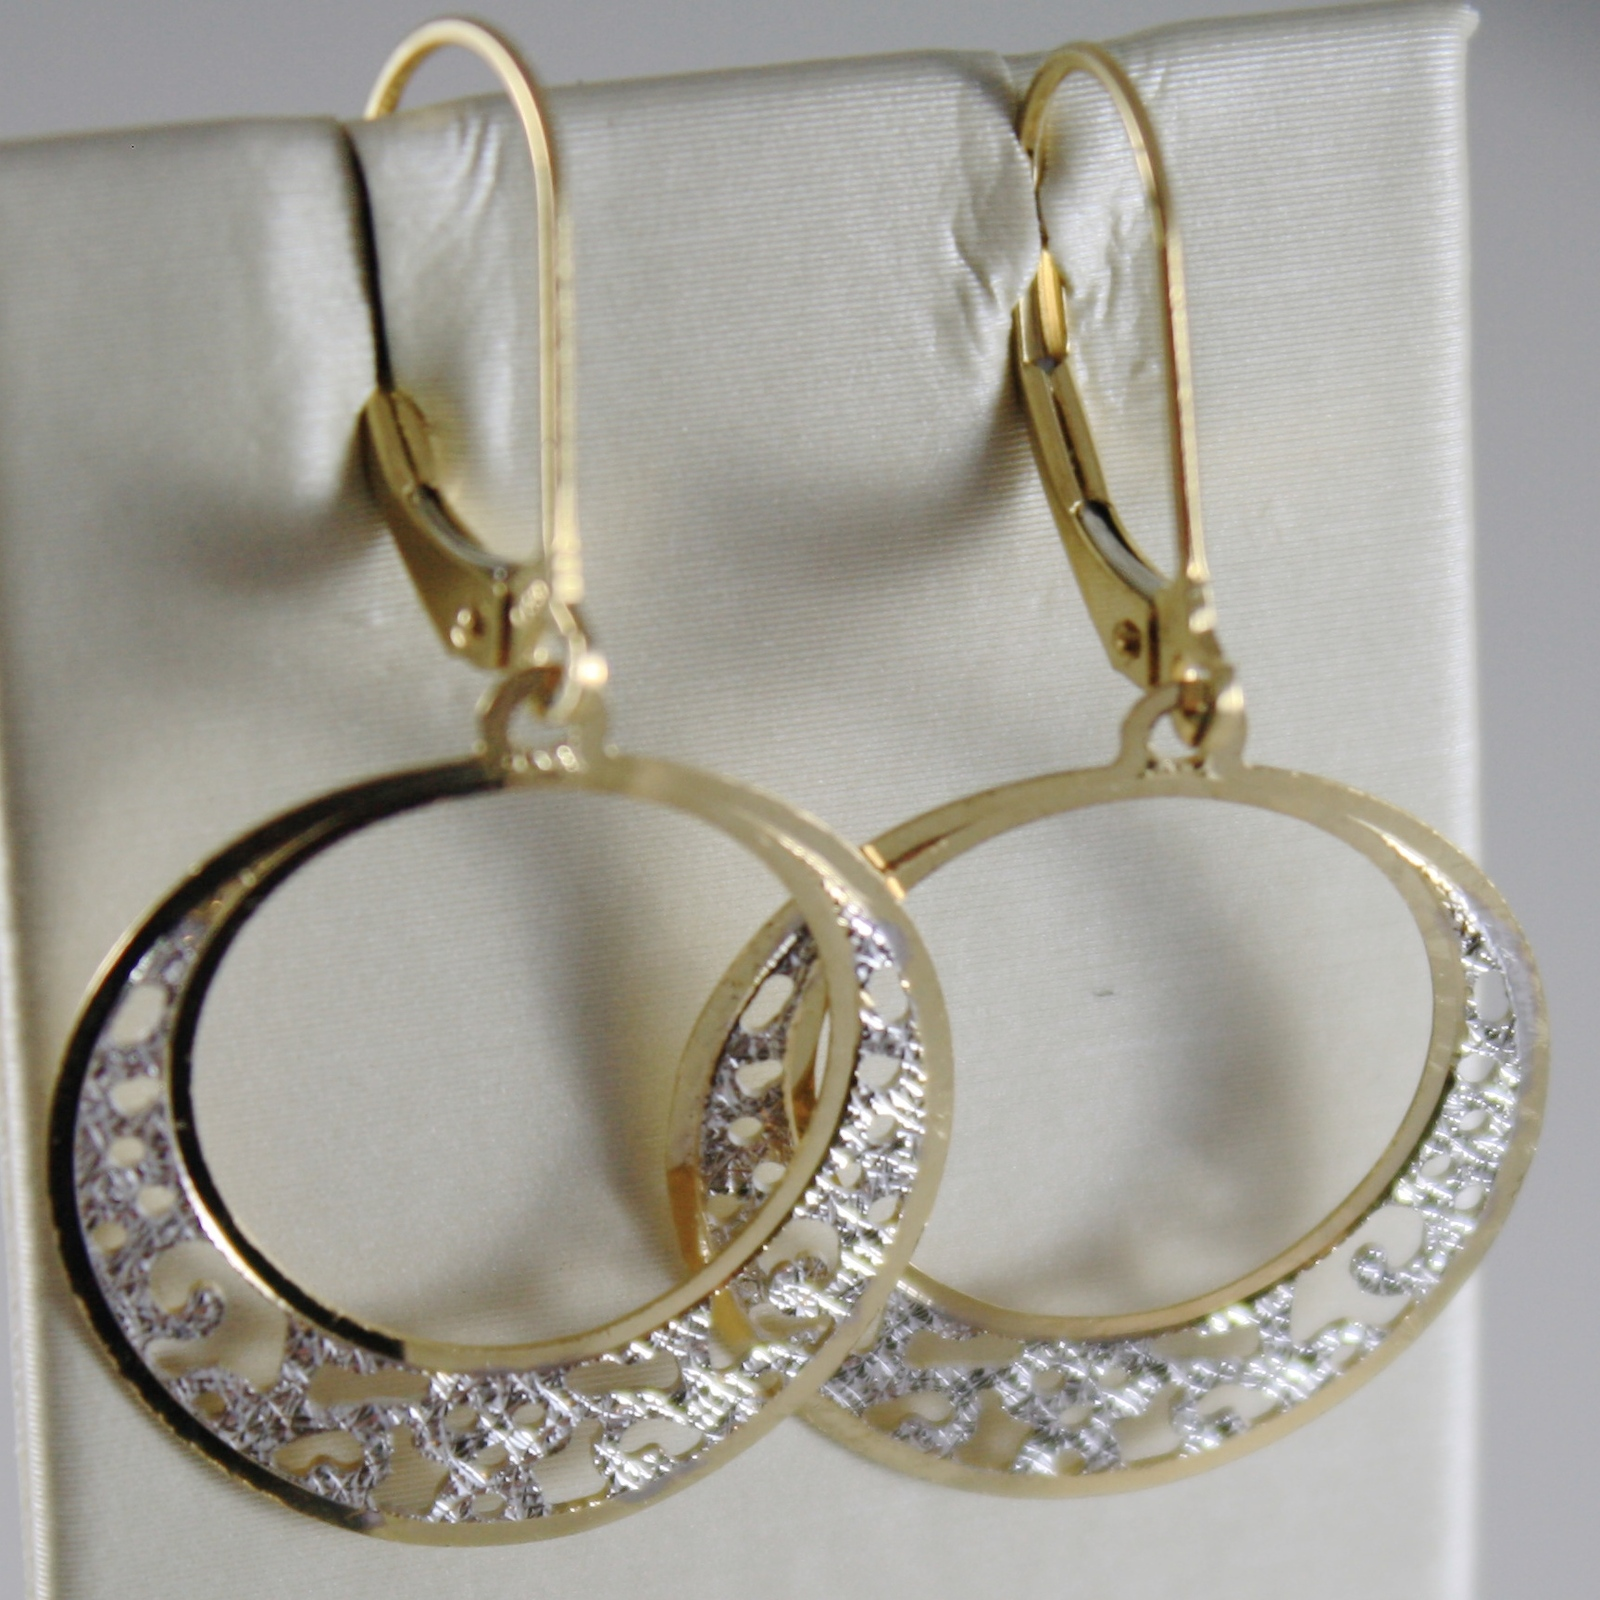 SOLID 18K YELLOW AND WHITE GOLD PENDANT EARRINGS WITH HARD WORK